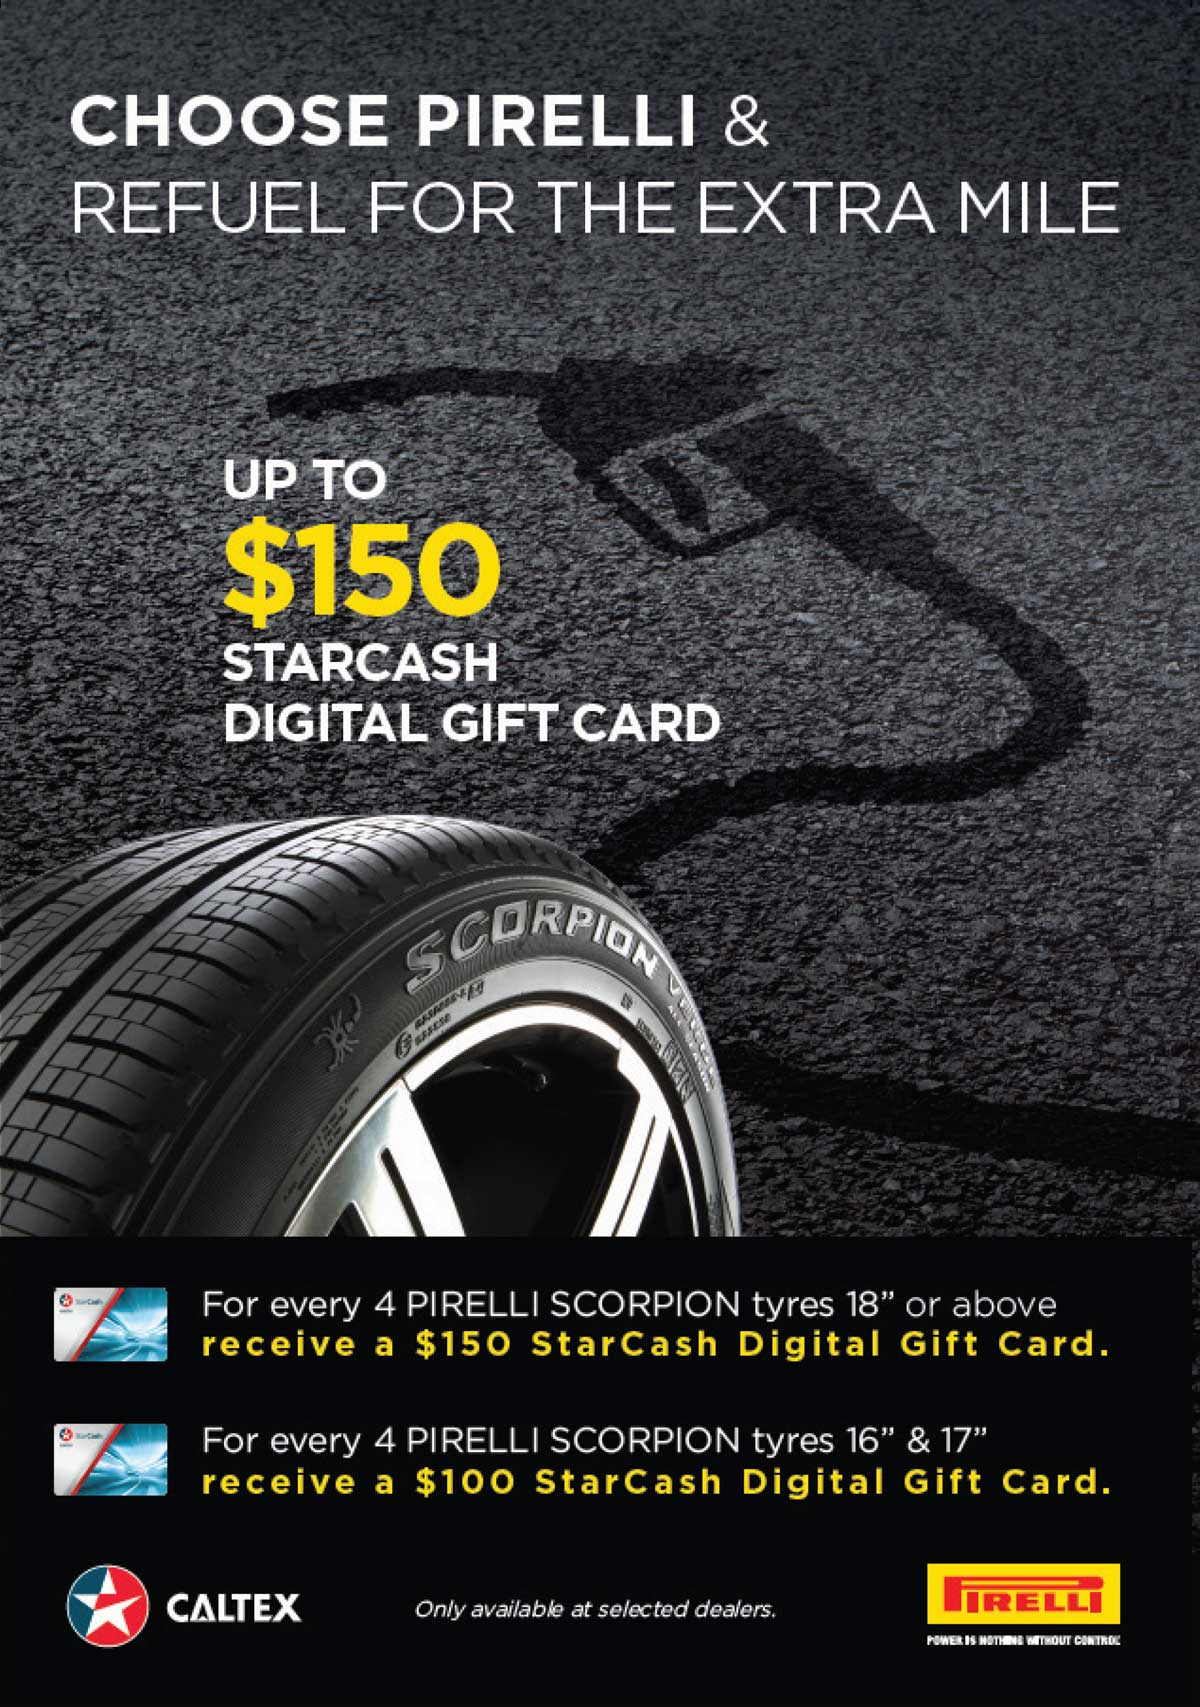 Choose Pirelli and receive up to $150 starcash digital gift card